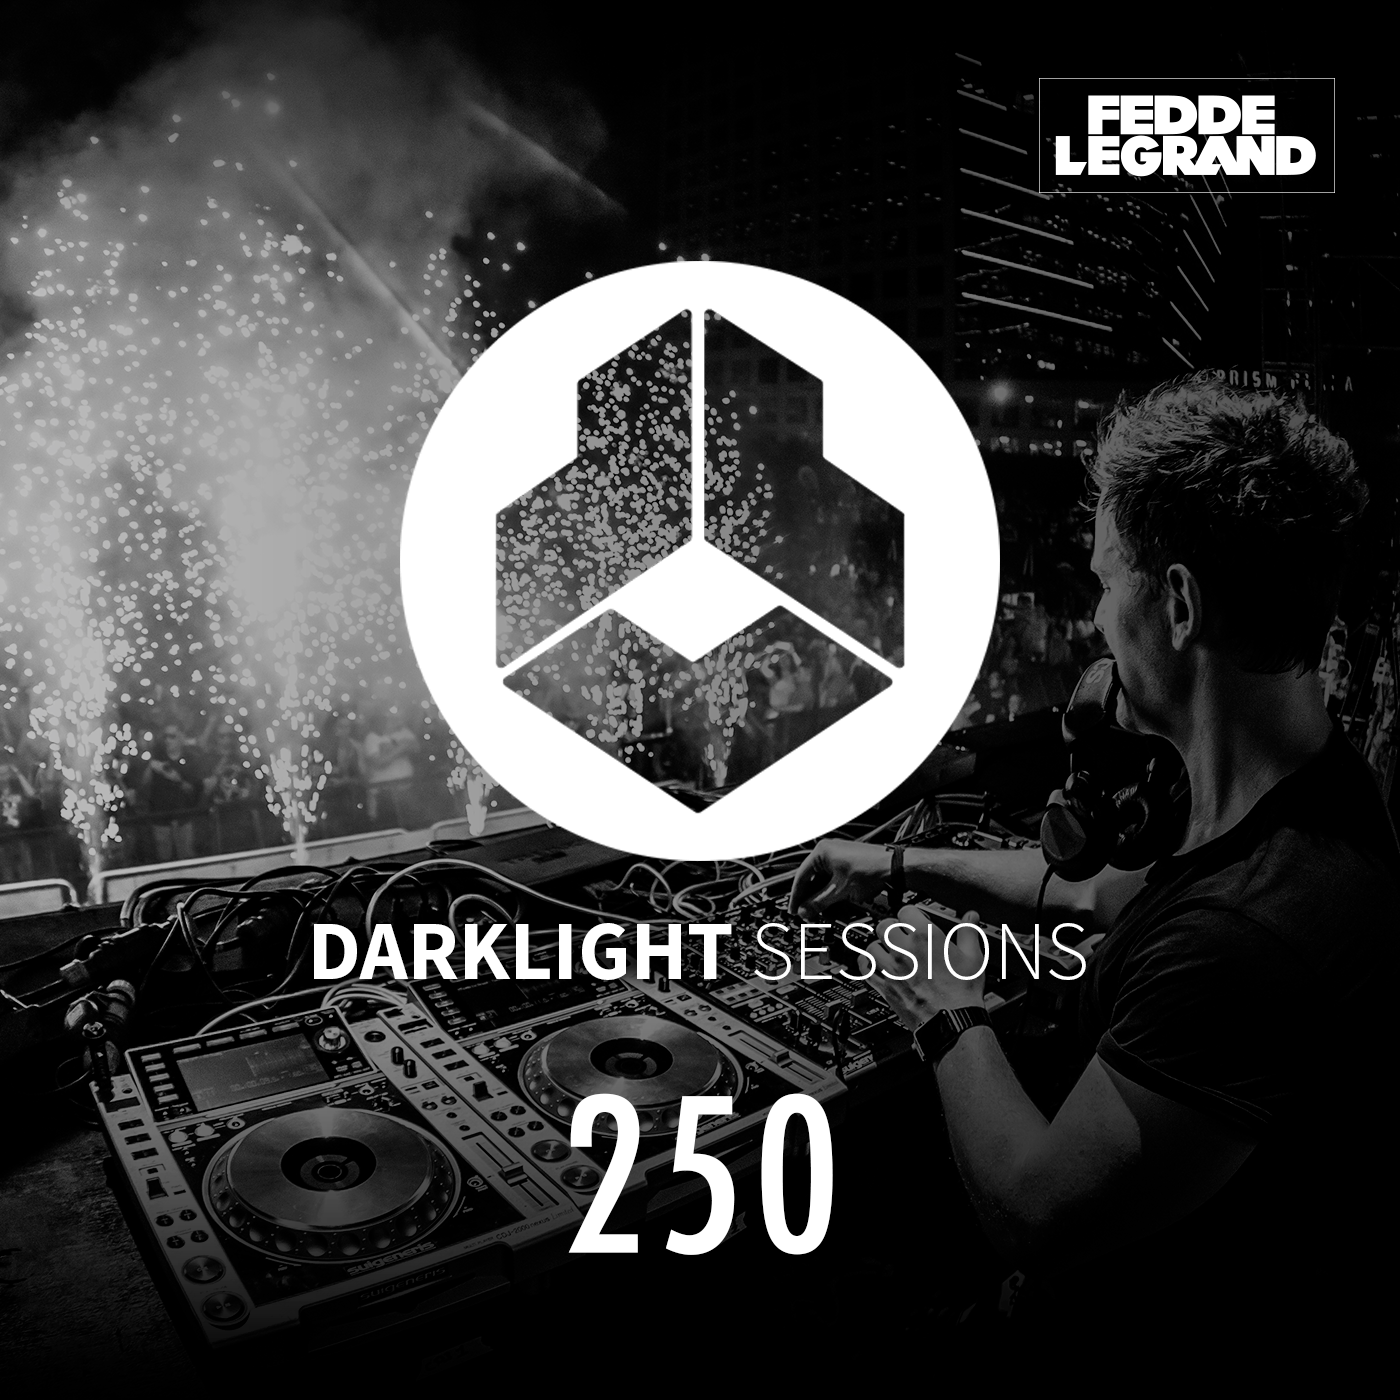 Darklight Sessions 250